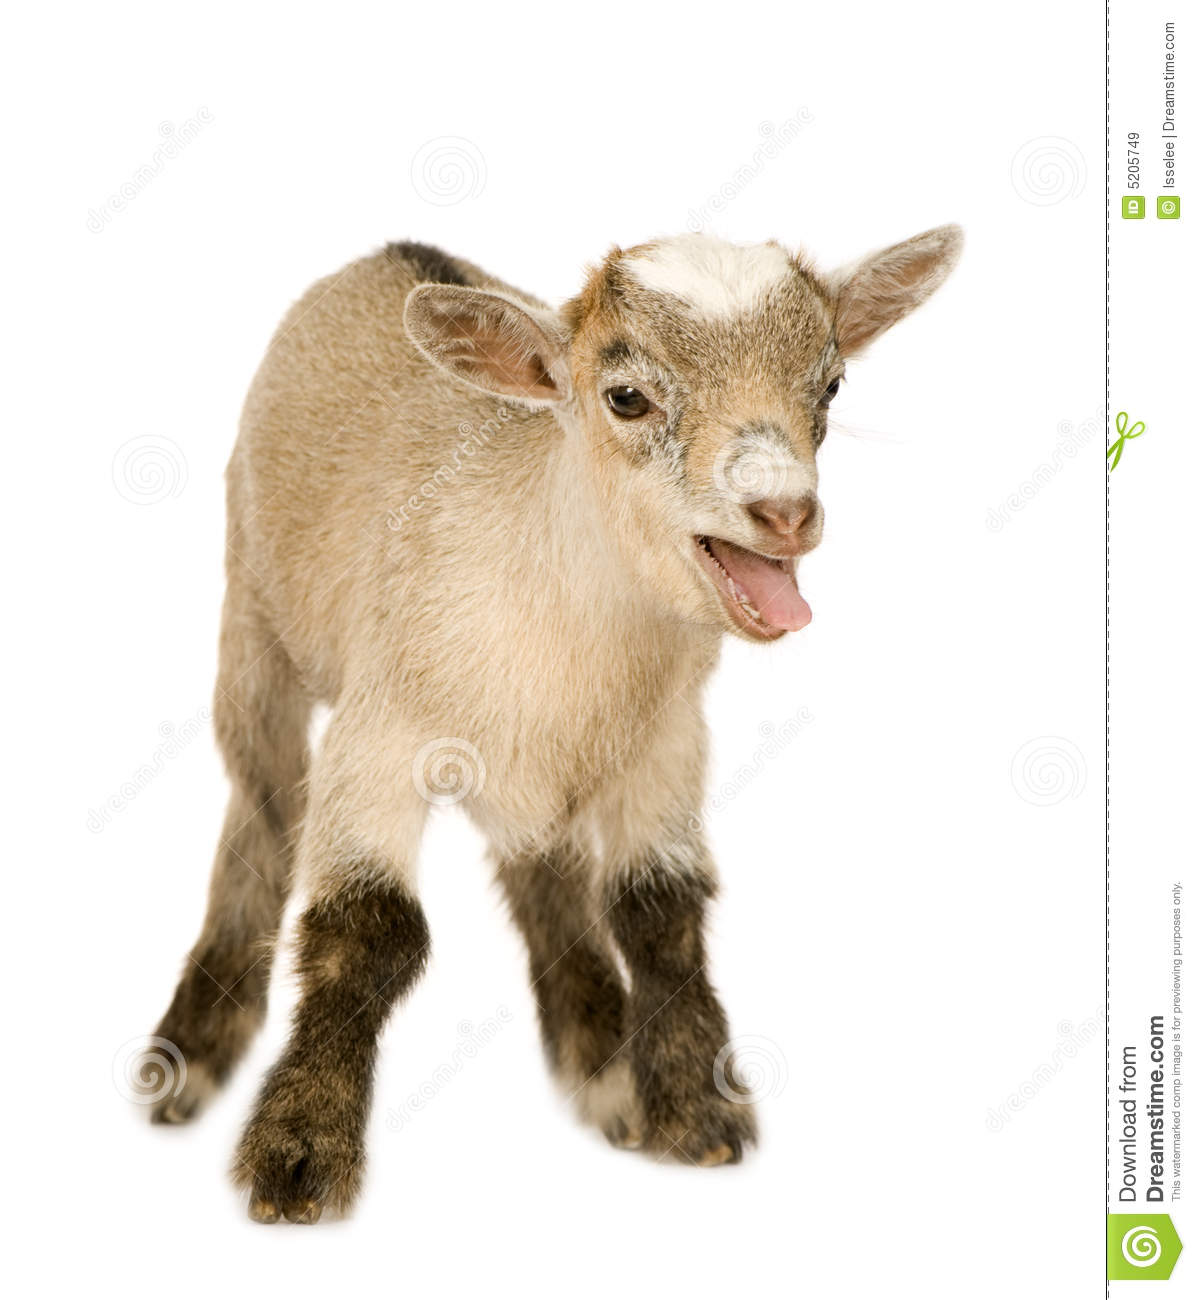 Young Pygmy Goat Royalty Free Stock Images - Image: 5205749